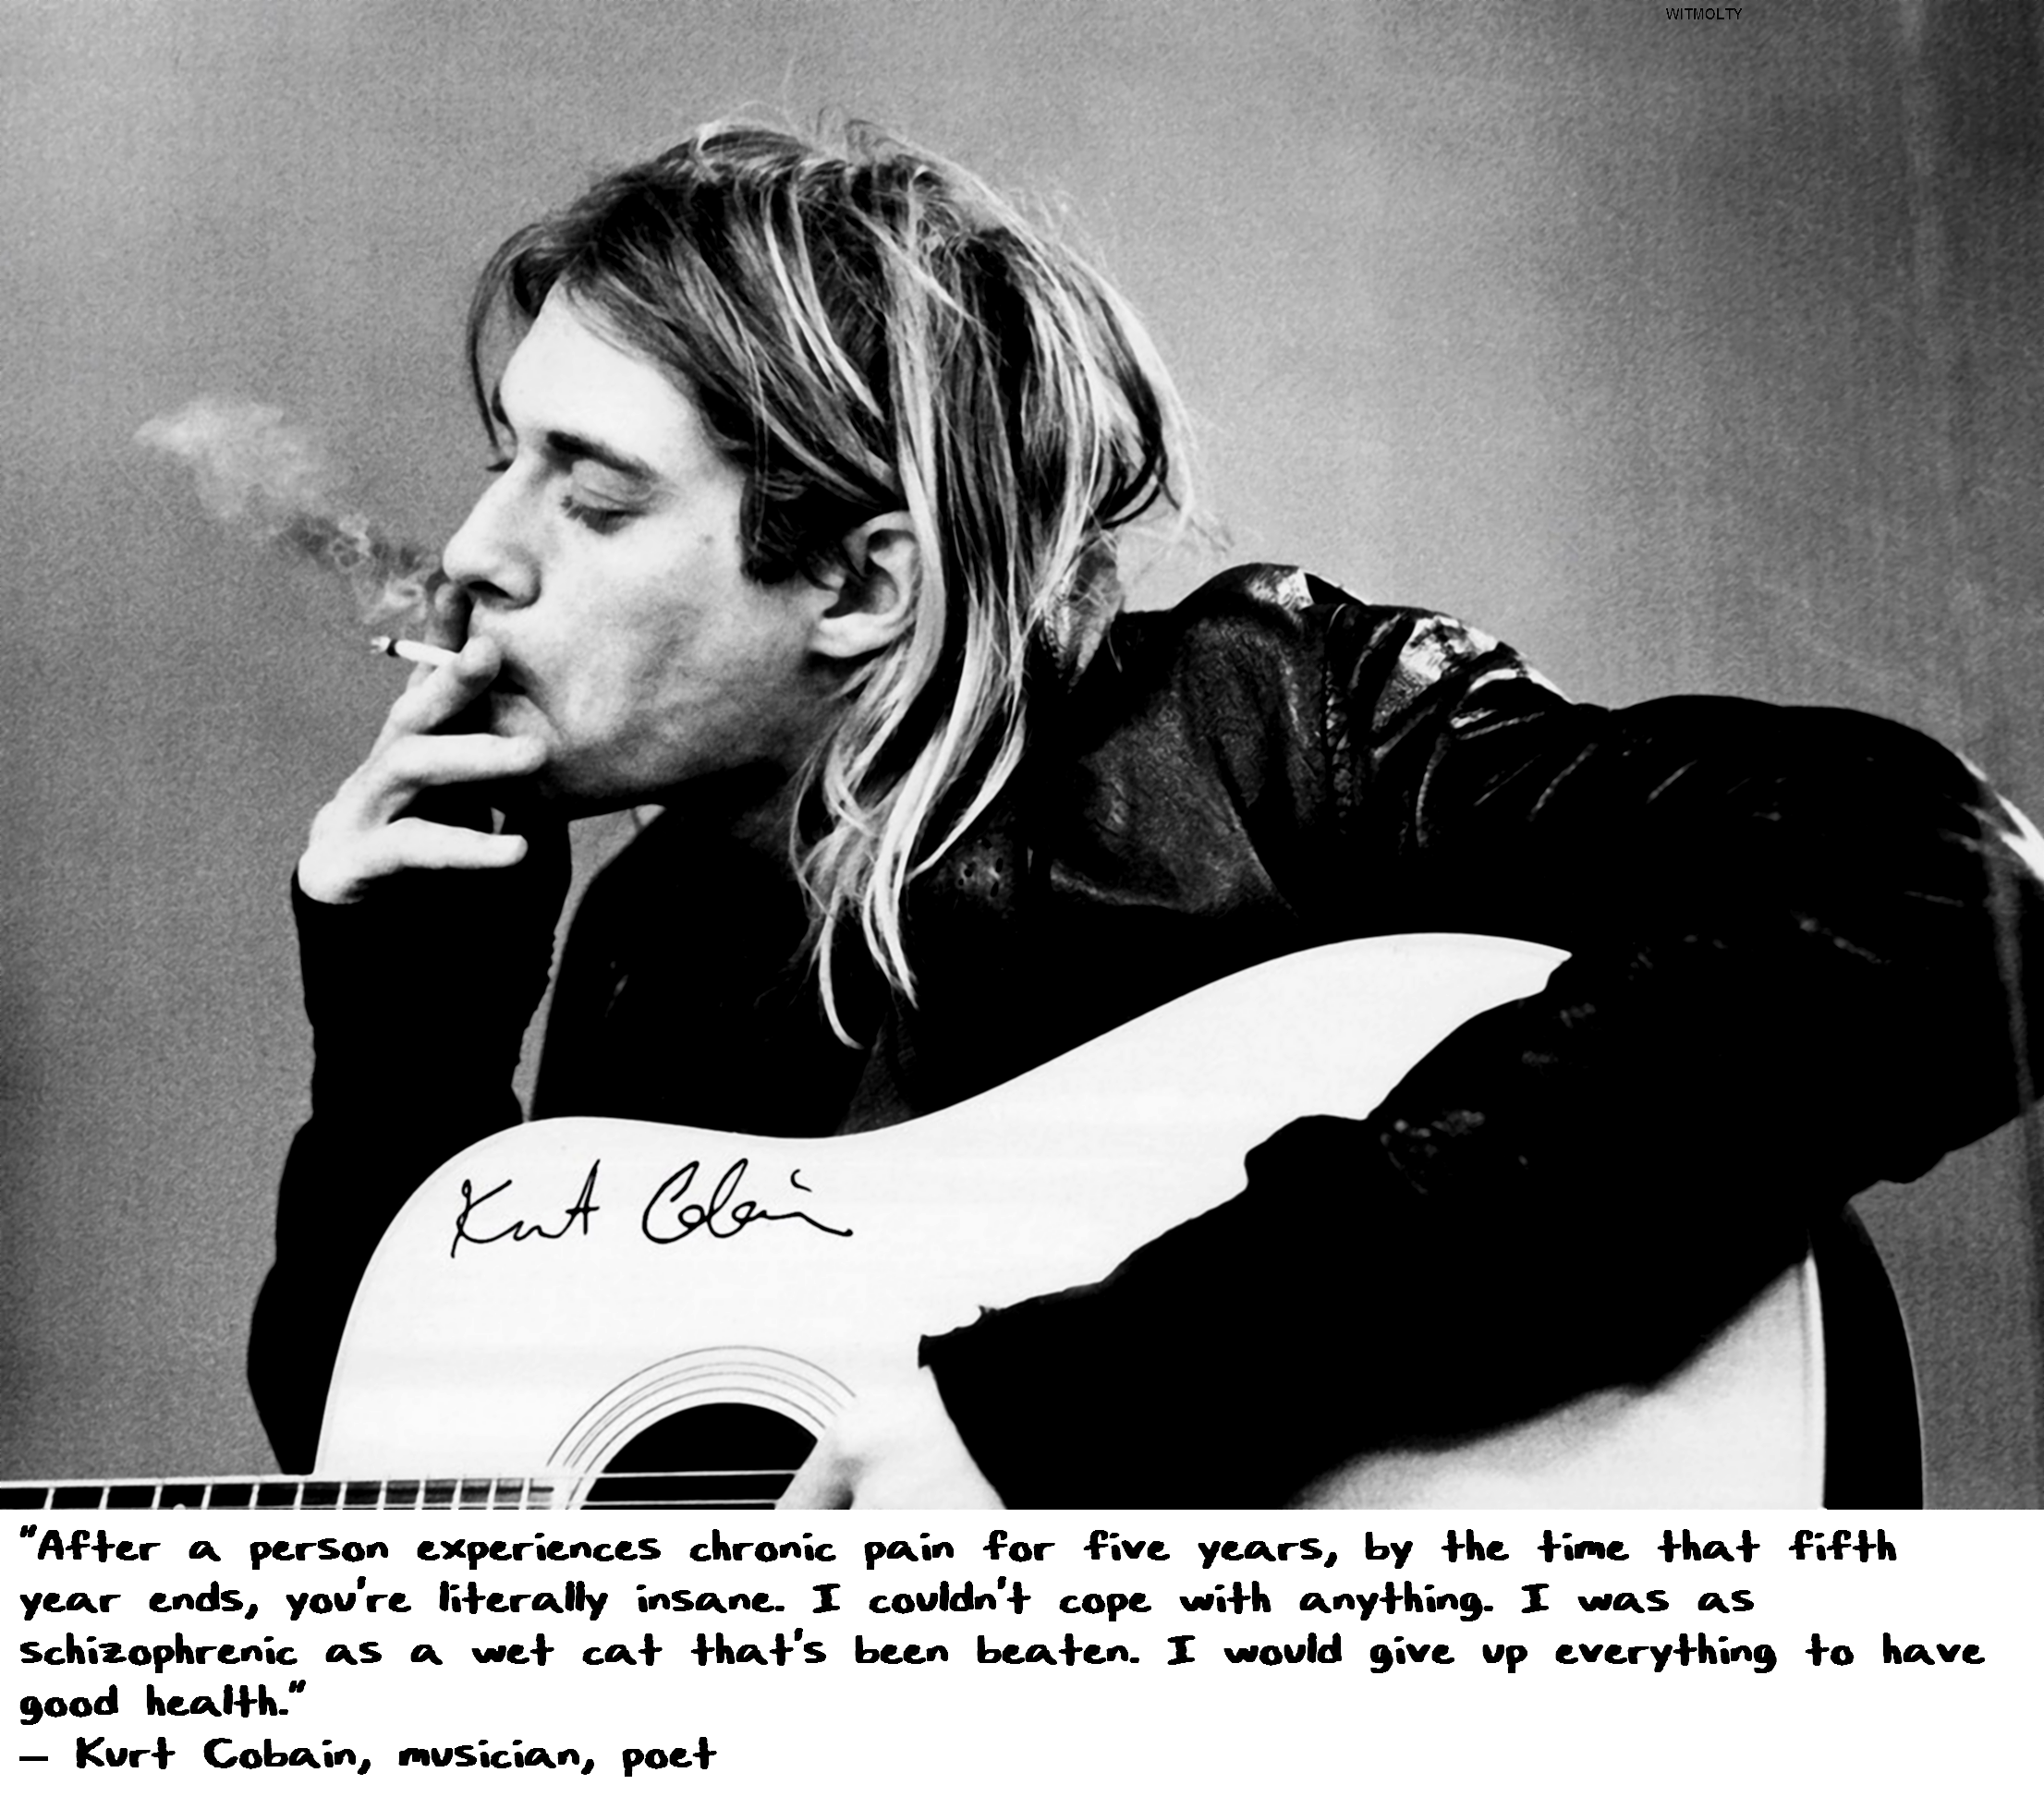 """After a person experiences chronic pain for five years, by the time that fifth year ends, you're literally insane. I couldn't cope with anything. I was as schizophrenic as a wet cat that's been beaten. I would give up everything to have good health."" — Kurt Cobain, musician, poet [2212×1958]"